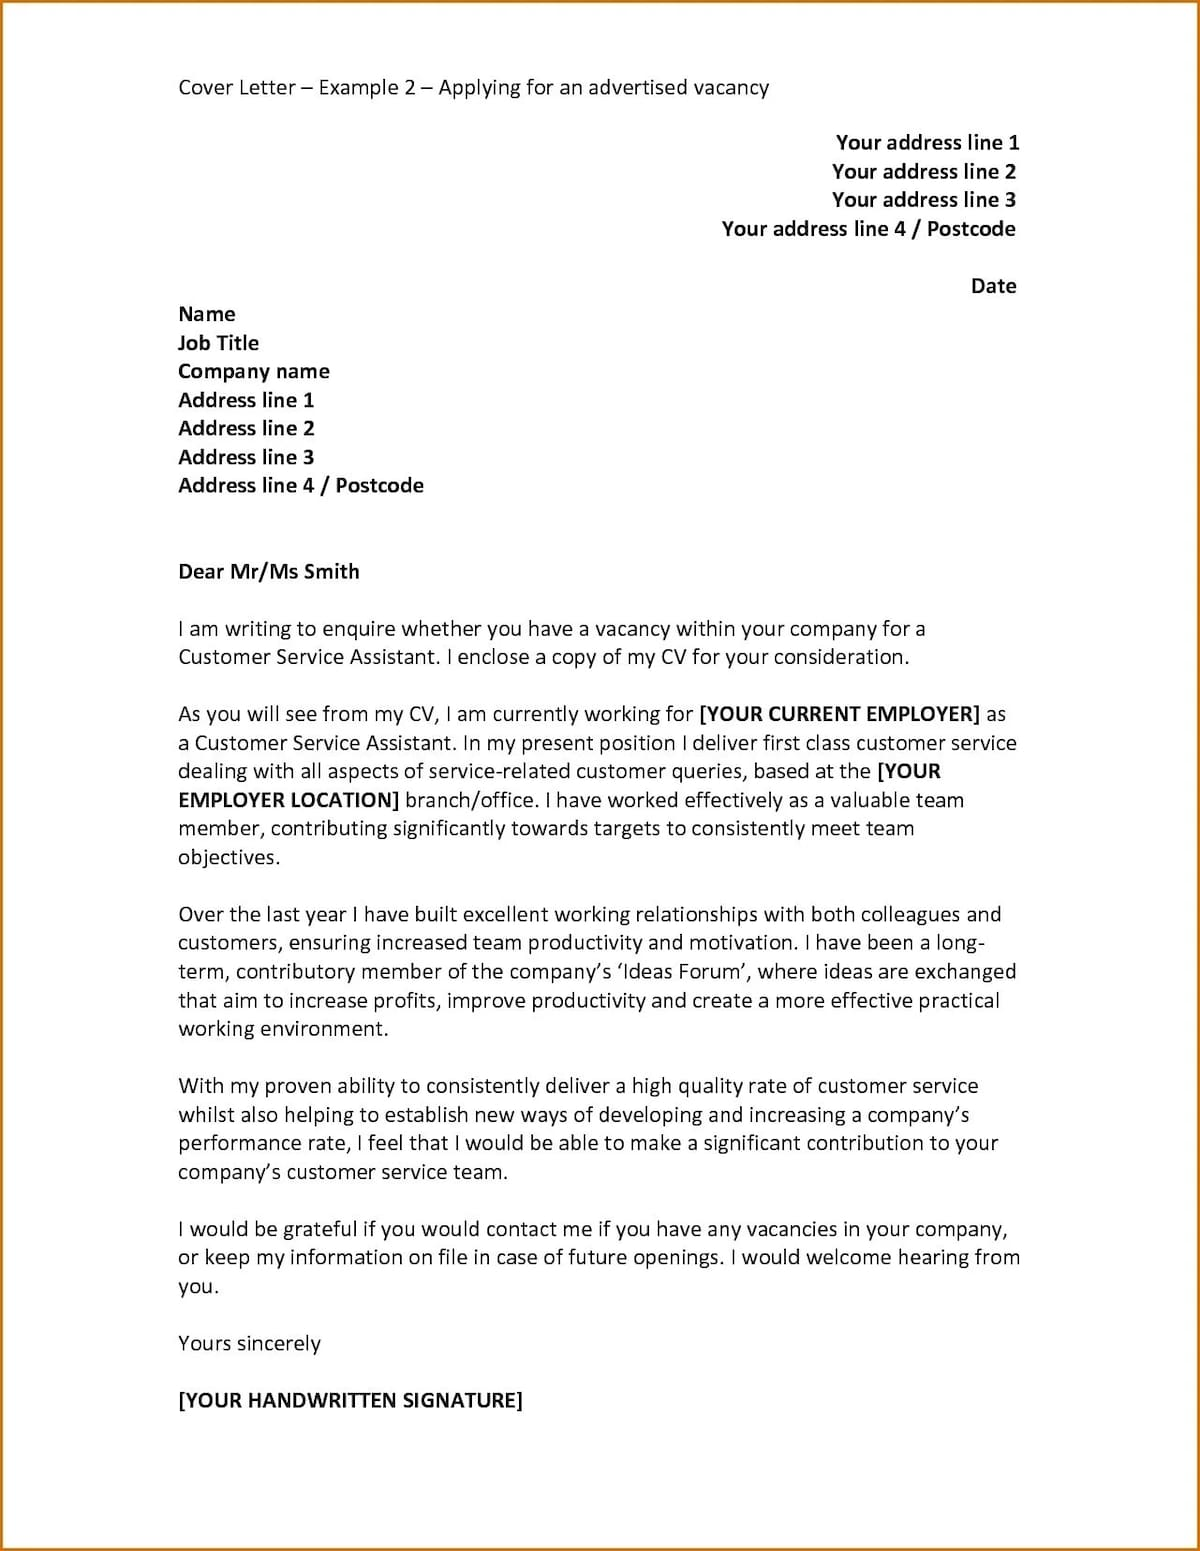 Cover Letter No Name Of Employer from netstorage-yen.akamaized.net